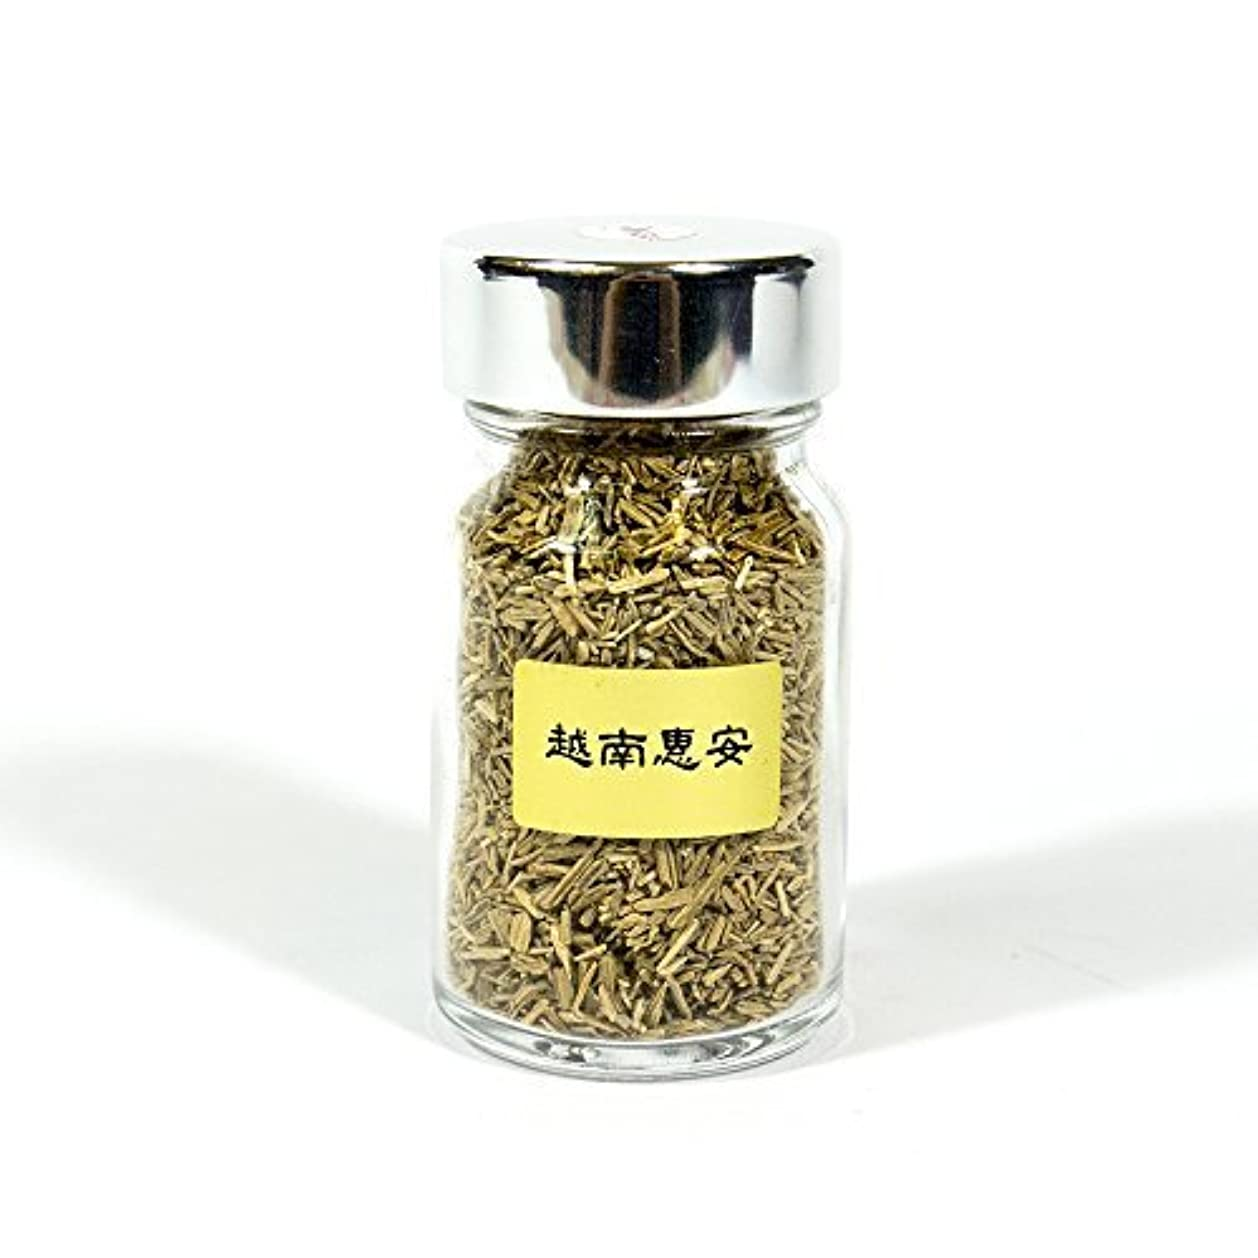 アミューズ騒ぎ領収書Agarwood Aloeswood Oud Chip Scrap Vietnam Hoi-An 10g Cultivated Suitable for Electric Burner by IncenseHouse - Raw Material [並行輸入品]